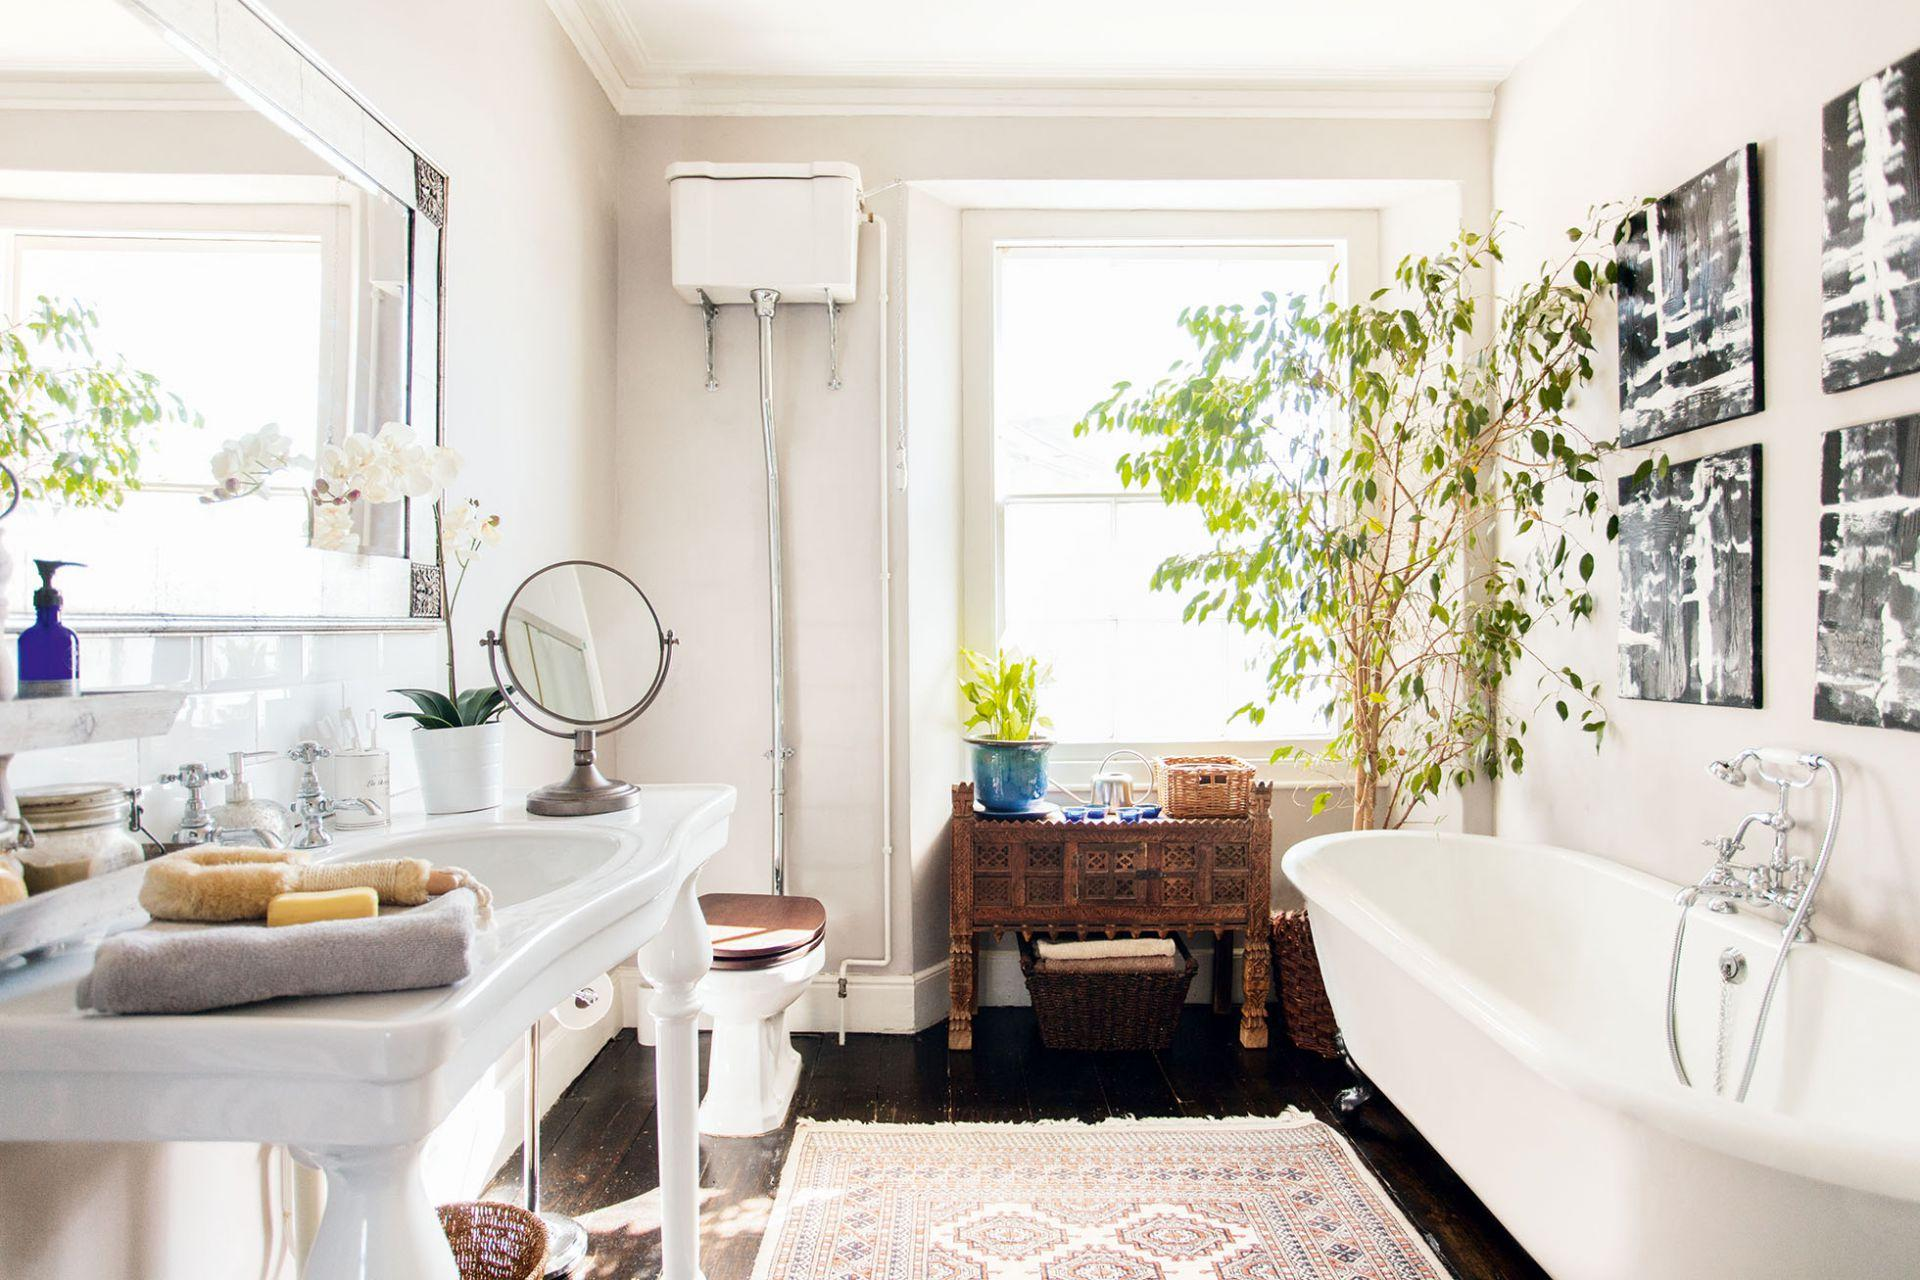 The Best Bathroom Renovations in Bristol